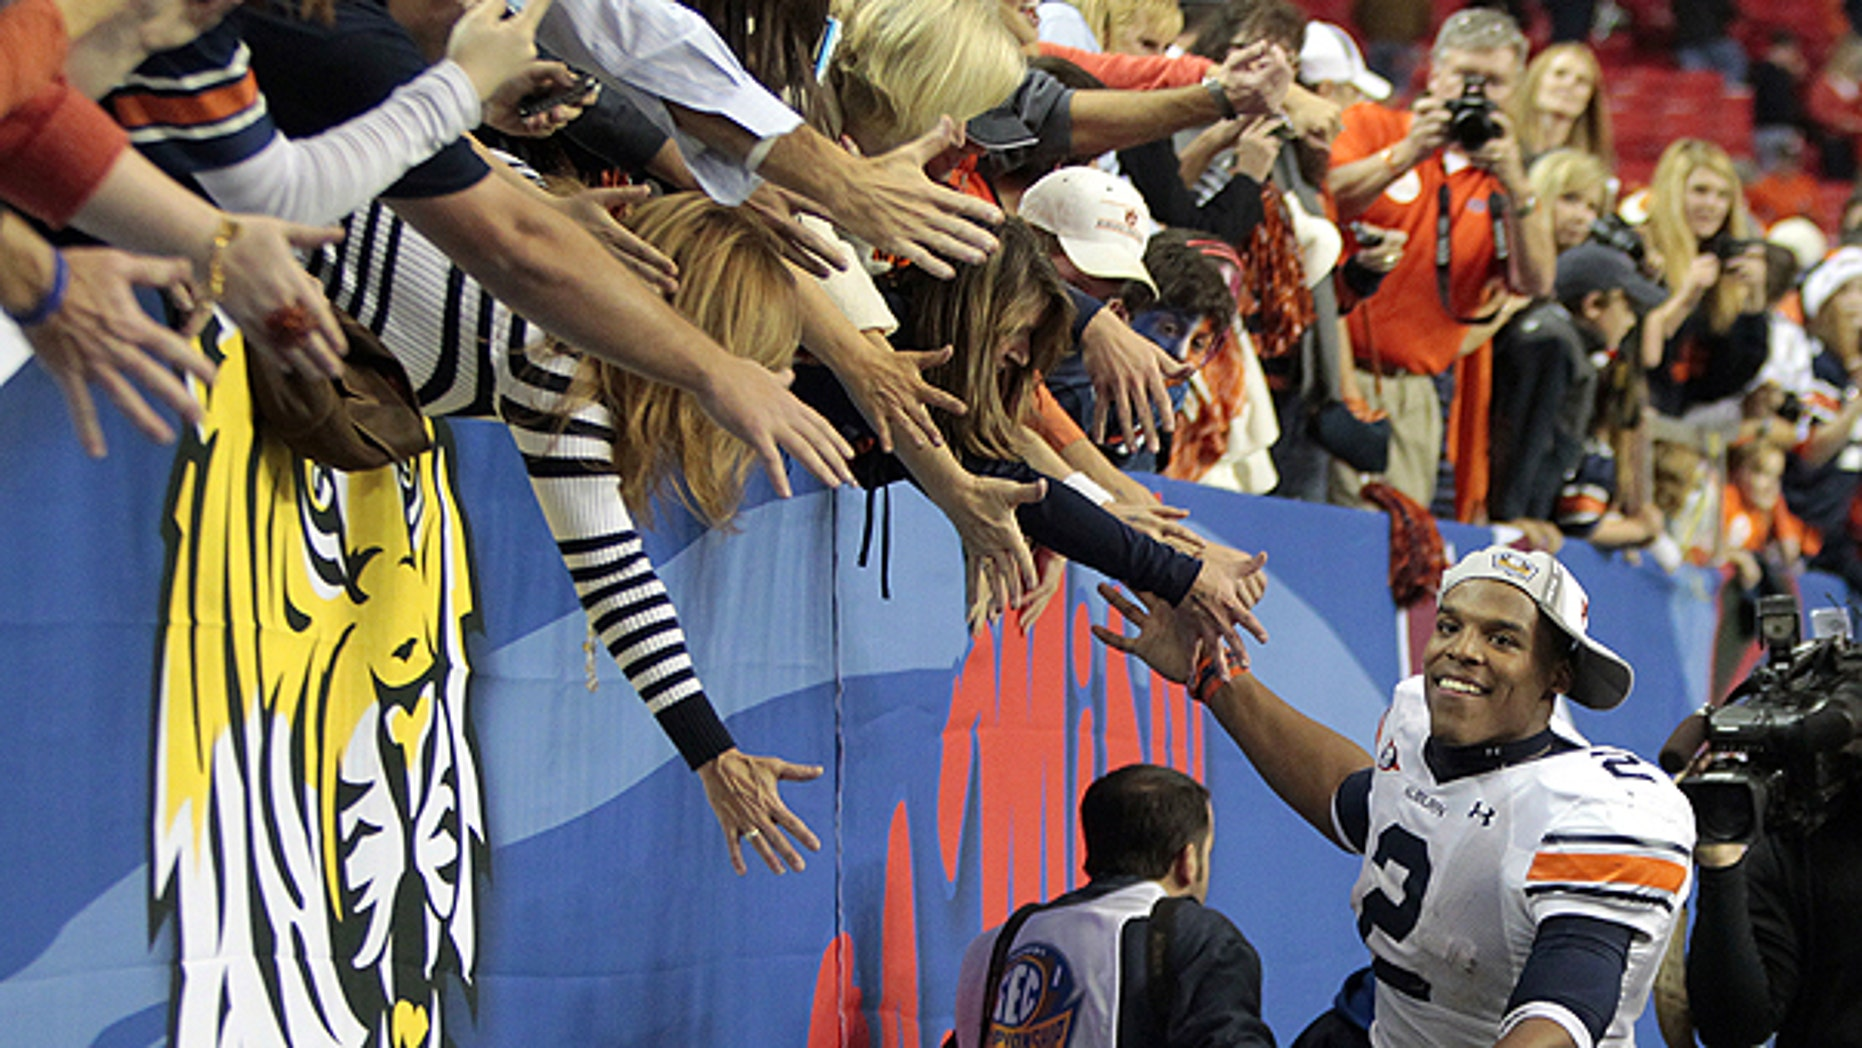 Dec. 4: Auburn quarterback Cameron Newton (2) celebrates with the fans after defeating South Carolina, 56-17, during the Southeastern Conference championship NCAA college football game in Atlanta.